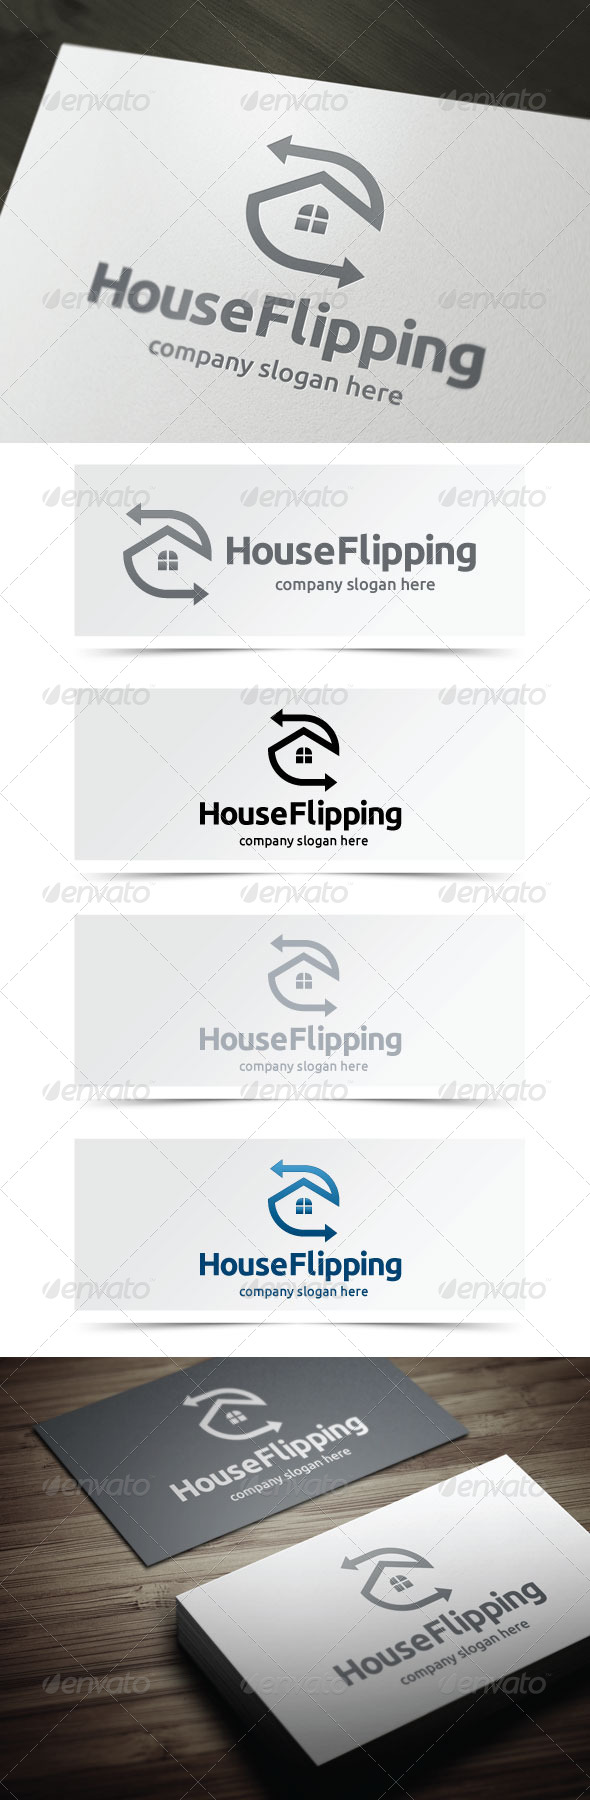 GraphicRiver House Flipping 5129120